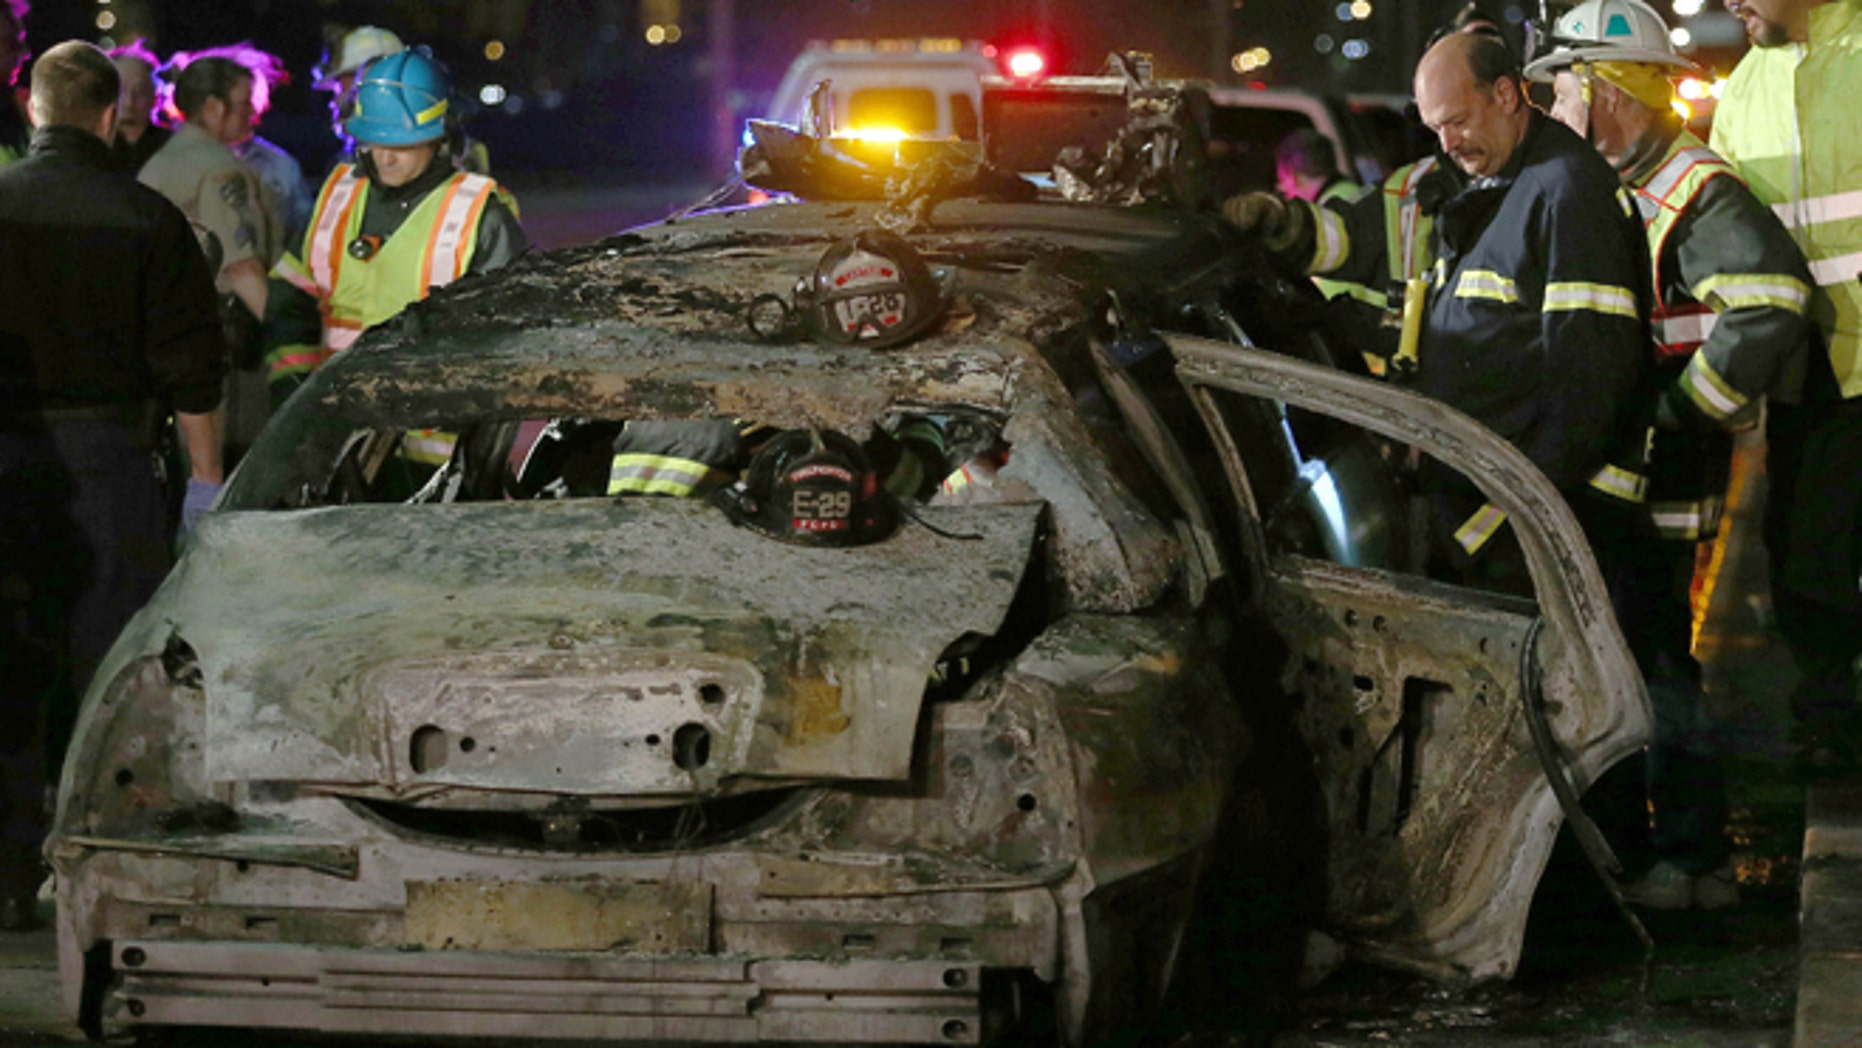 May 4, 2013: San Mateo County firefighters and California Highway Patrol personnel investigate the scene of a limousine fire on the westbound side of the San Mateo-Hayward Bridge in Foster City, Calif.